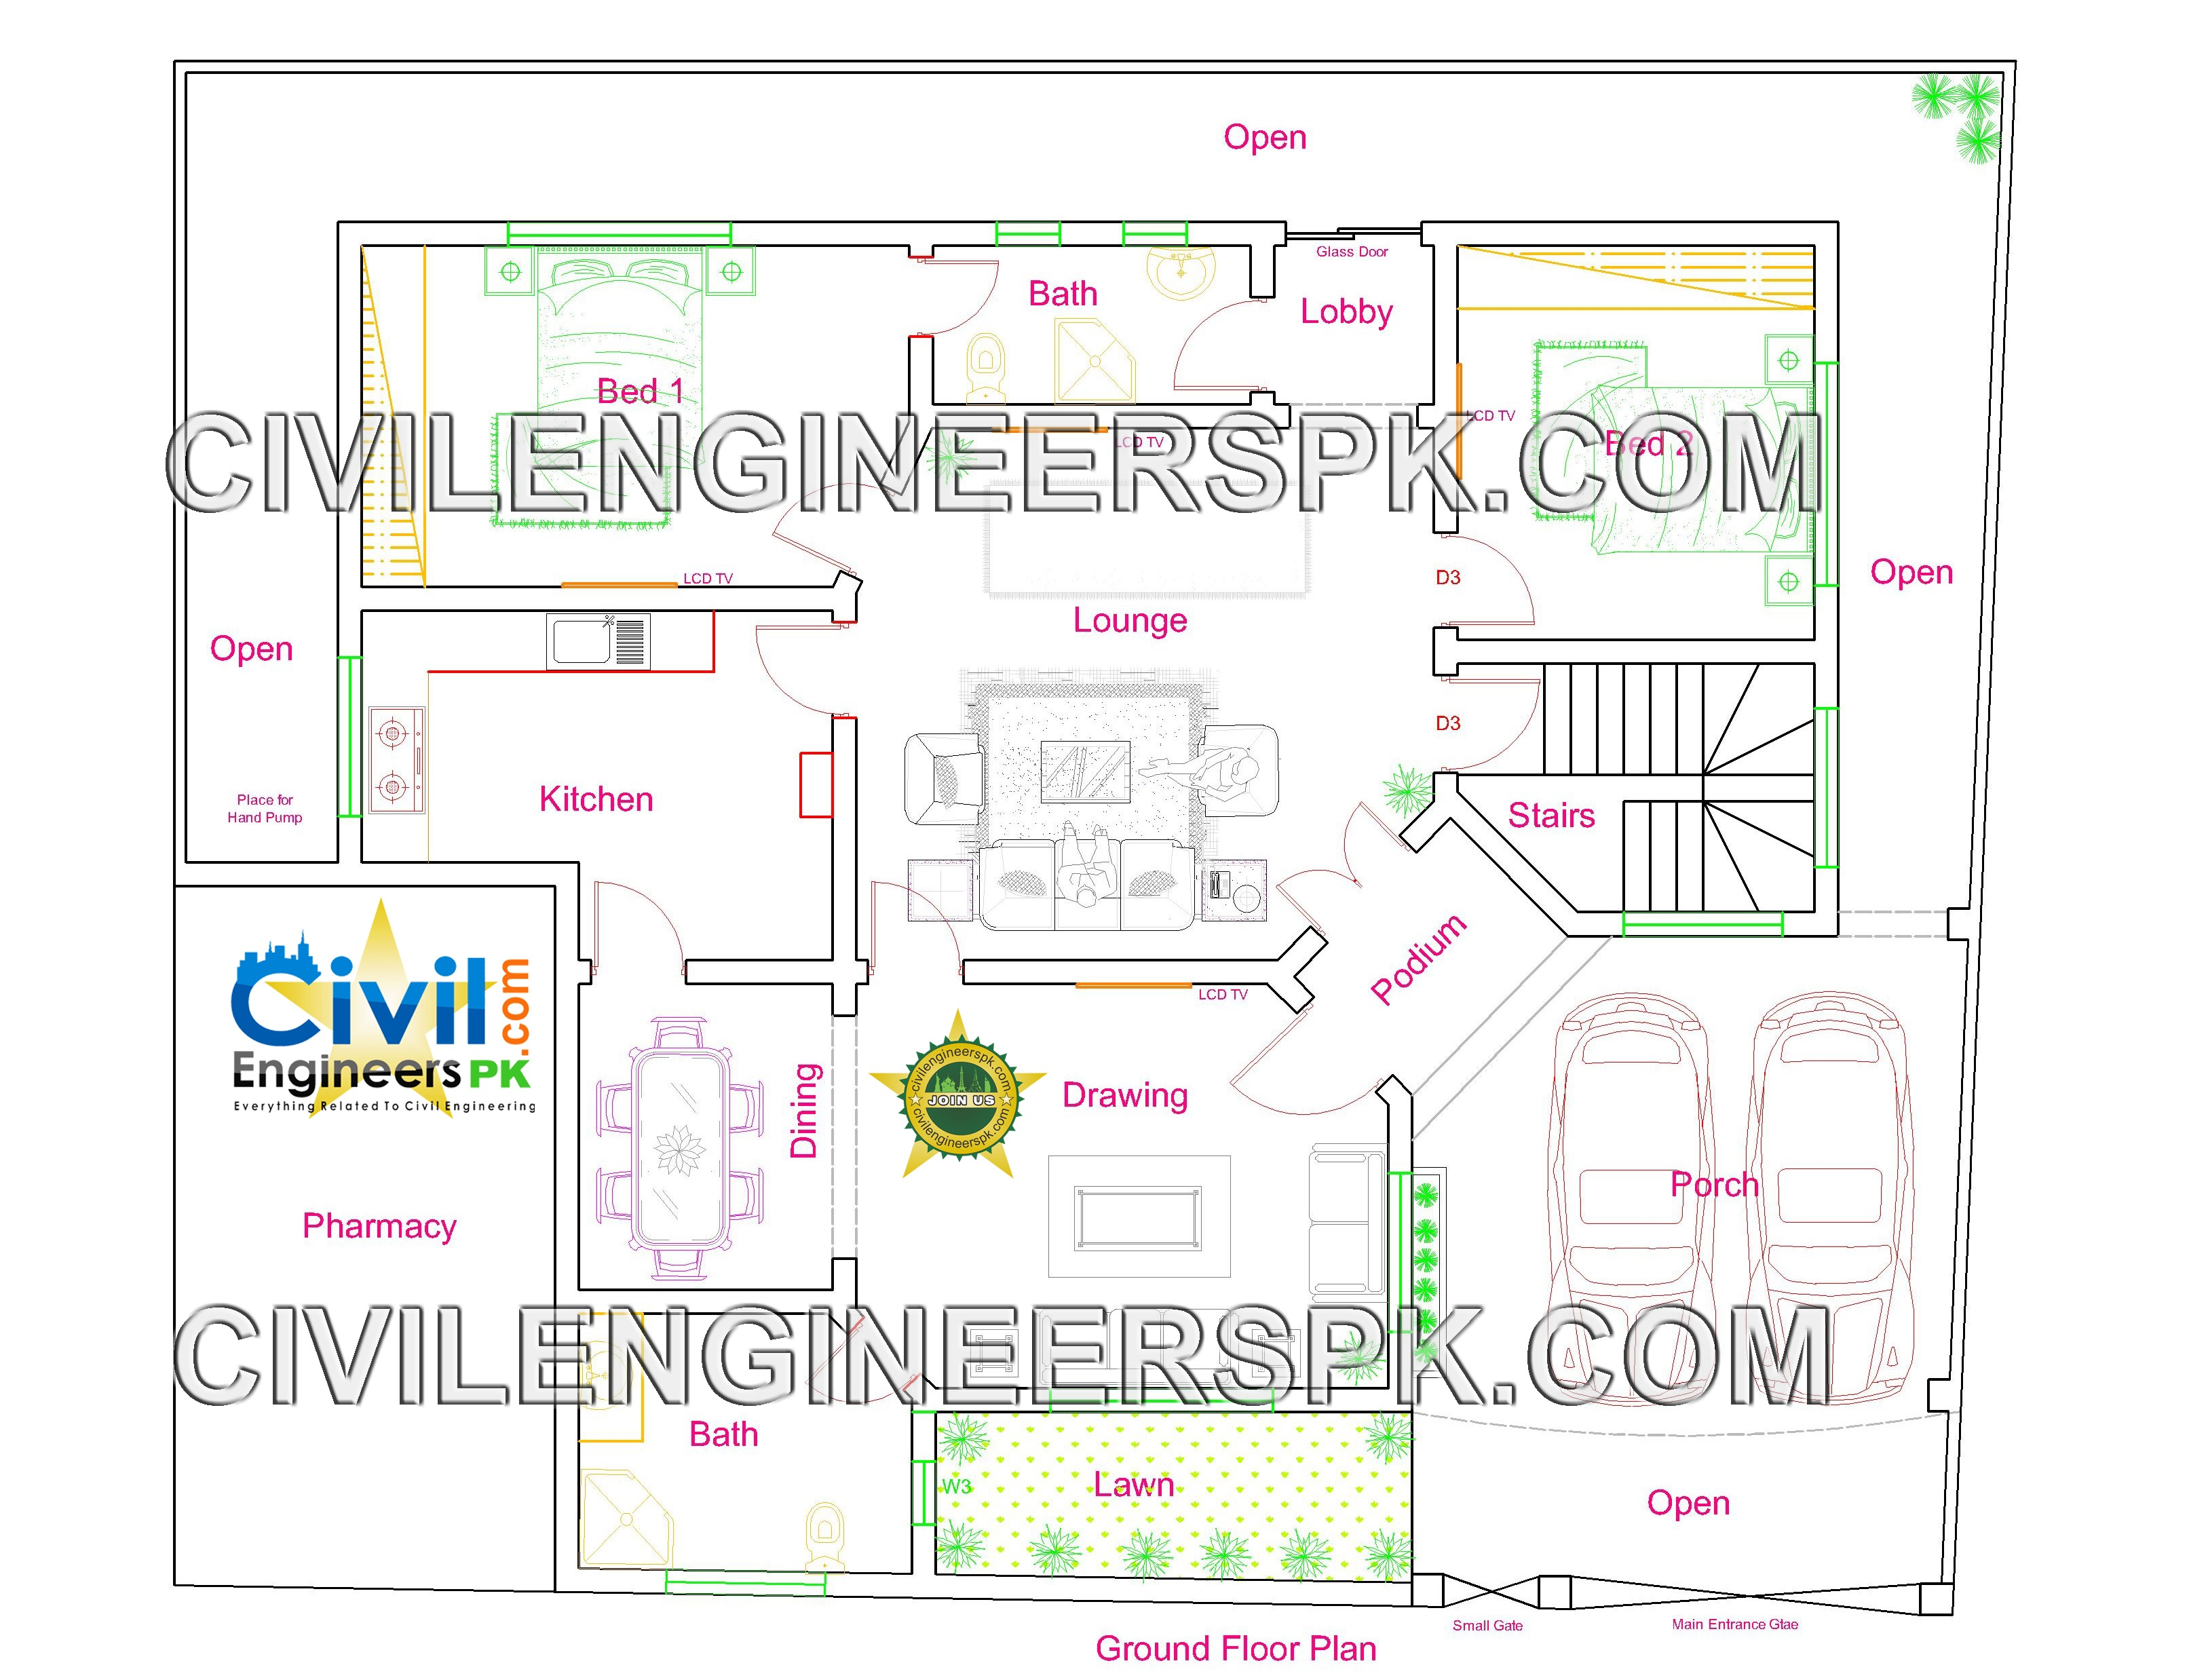 New 12 marla house design civil engineers pk for Home engineering plan